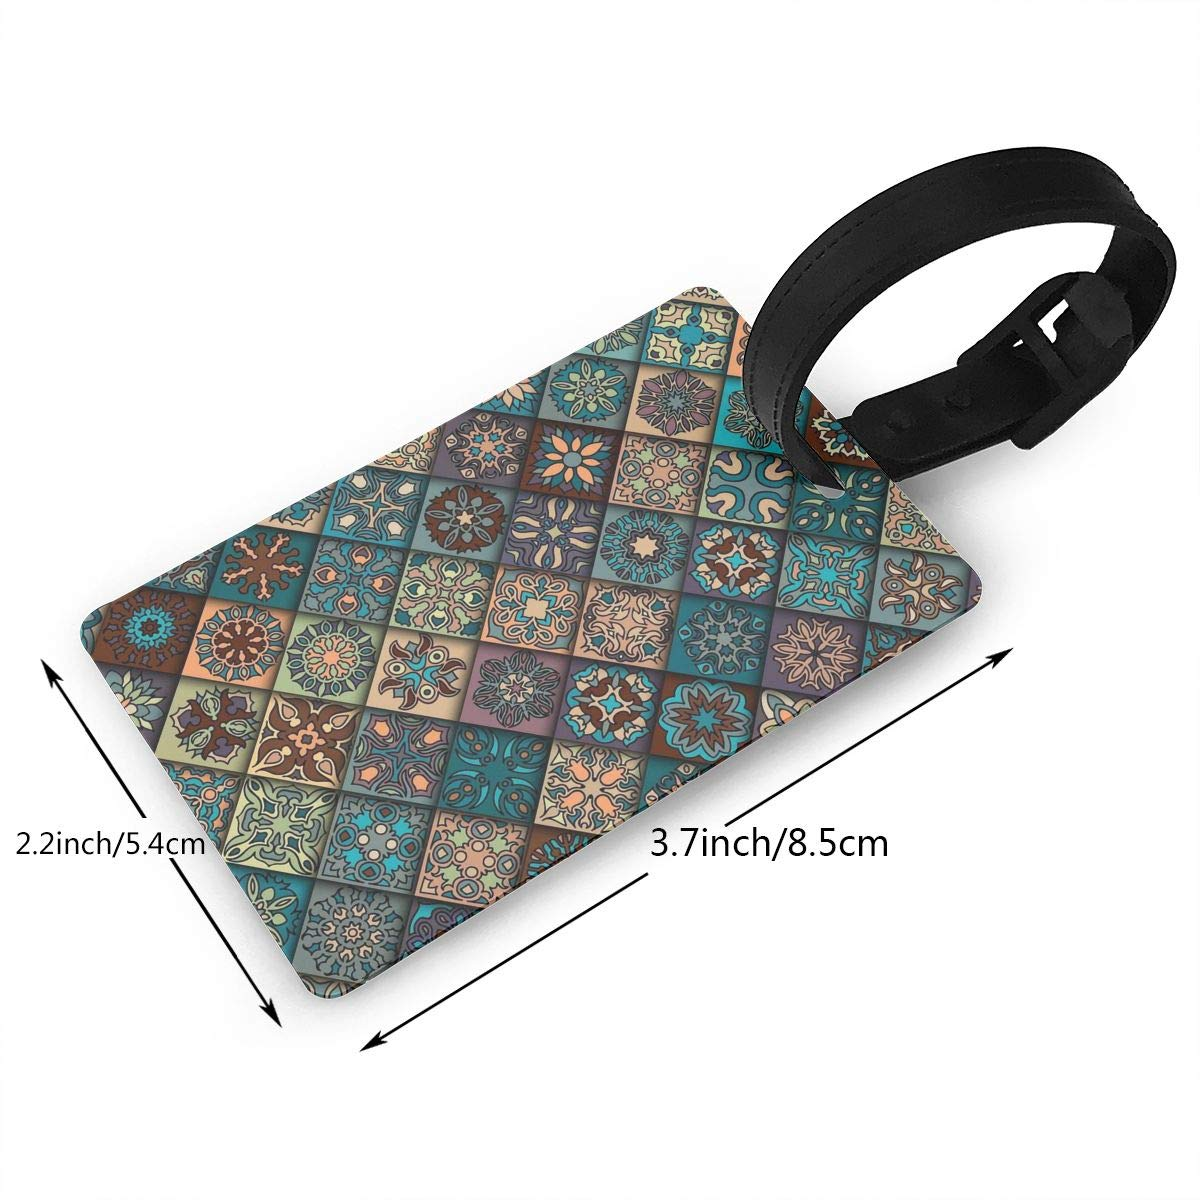 2 Pack Luggage Tags Abstract Cruise Luggage Tag For Travel Bag Suitcase Accessories